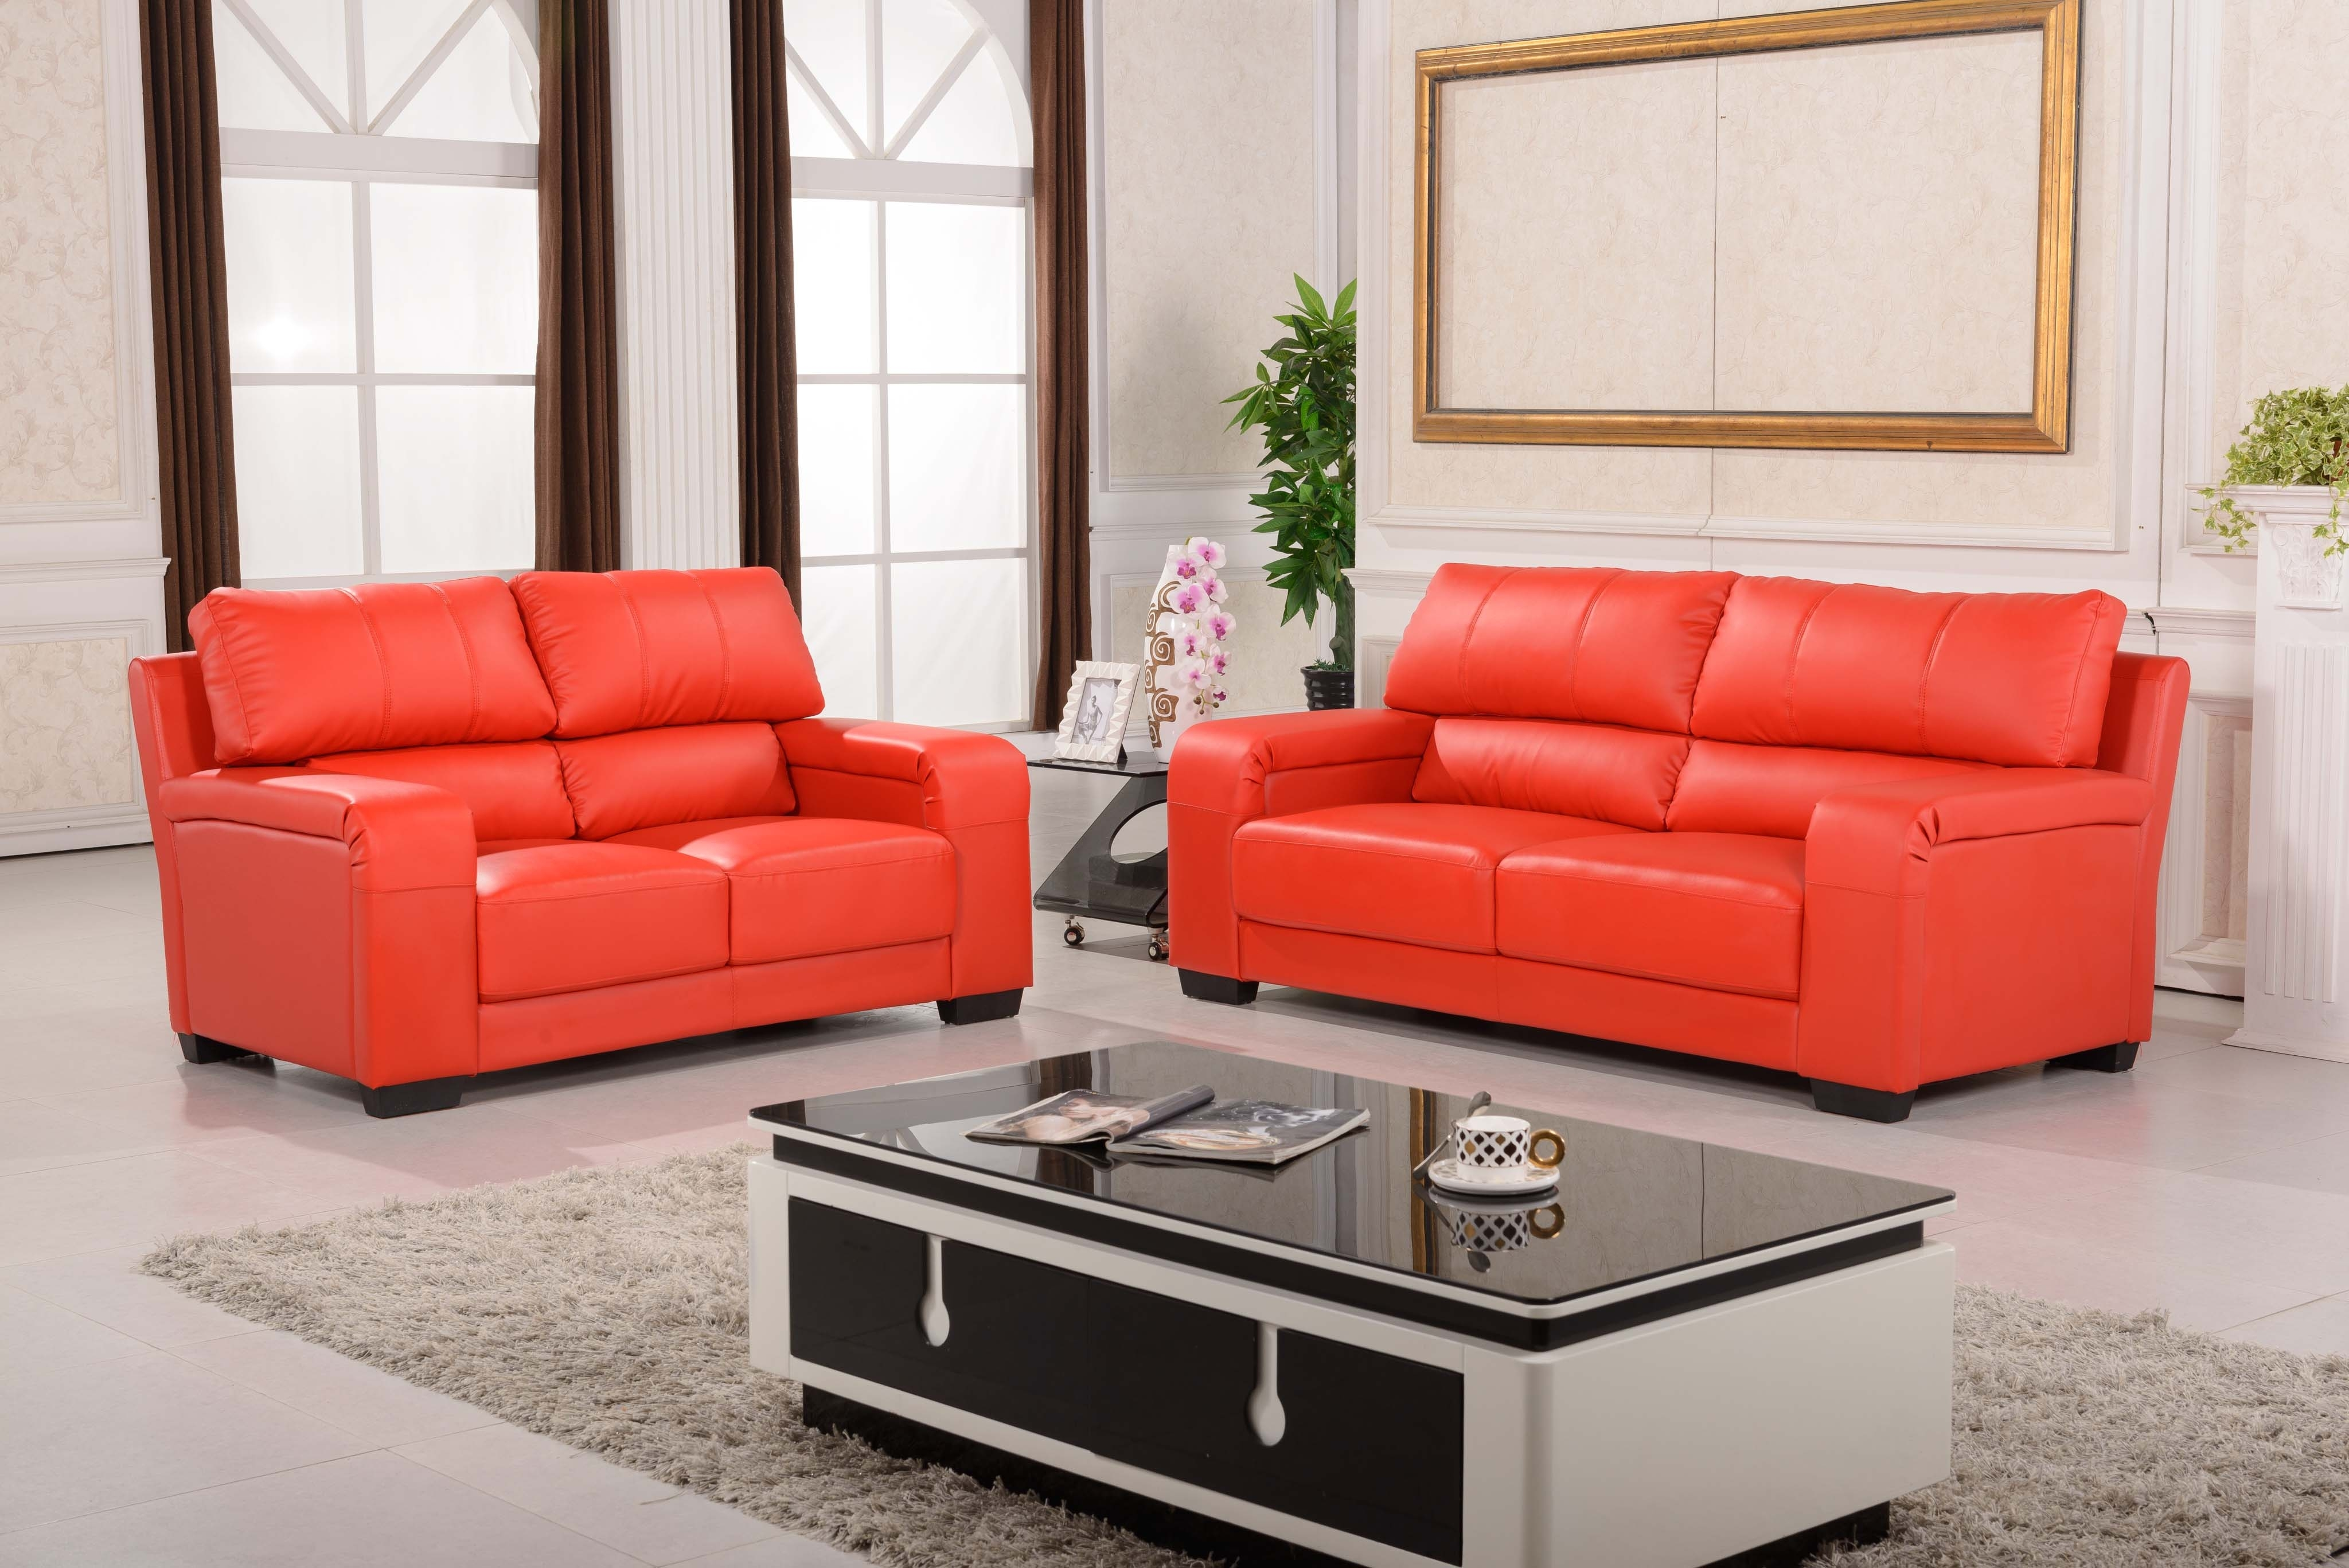 Leather Sofas Orange County Sofa Stores Ashley Furniture Sectional Inside Orange County Ca Sectional Sofas (View 5 of 10)